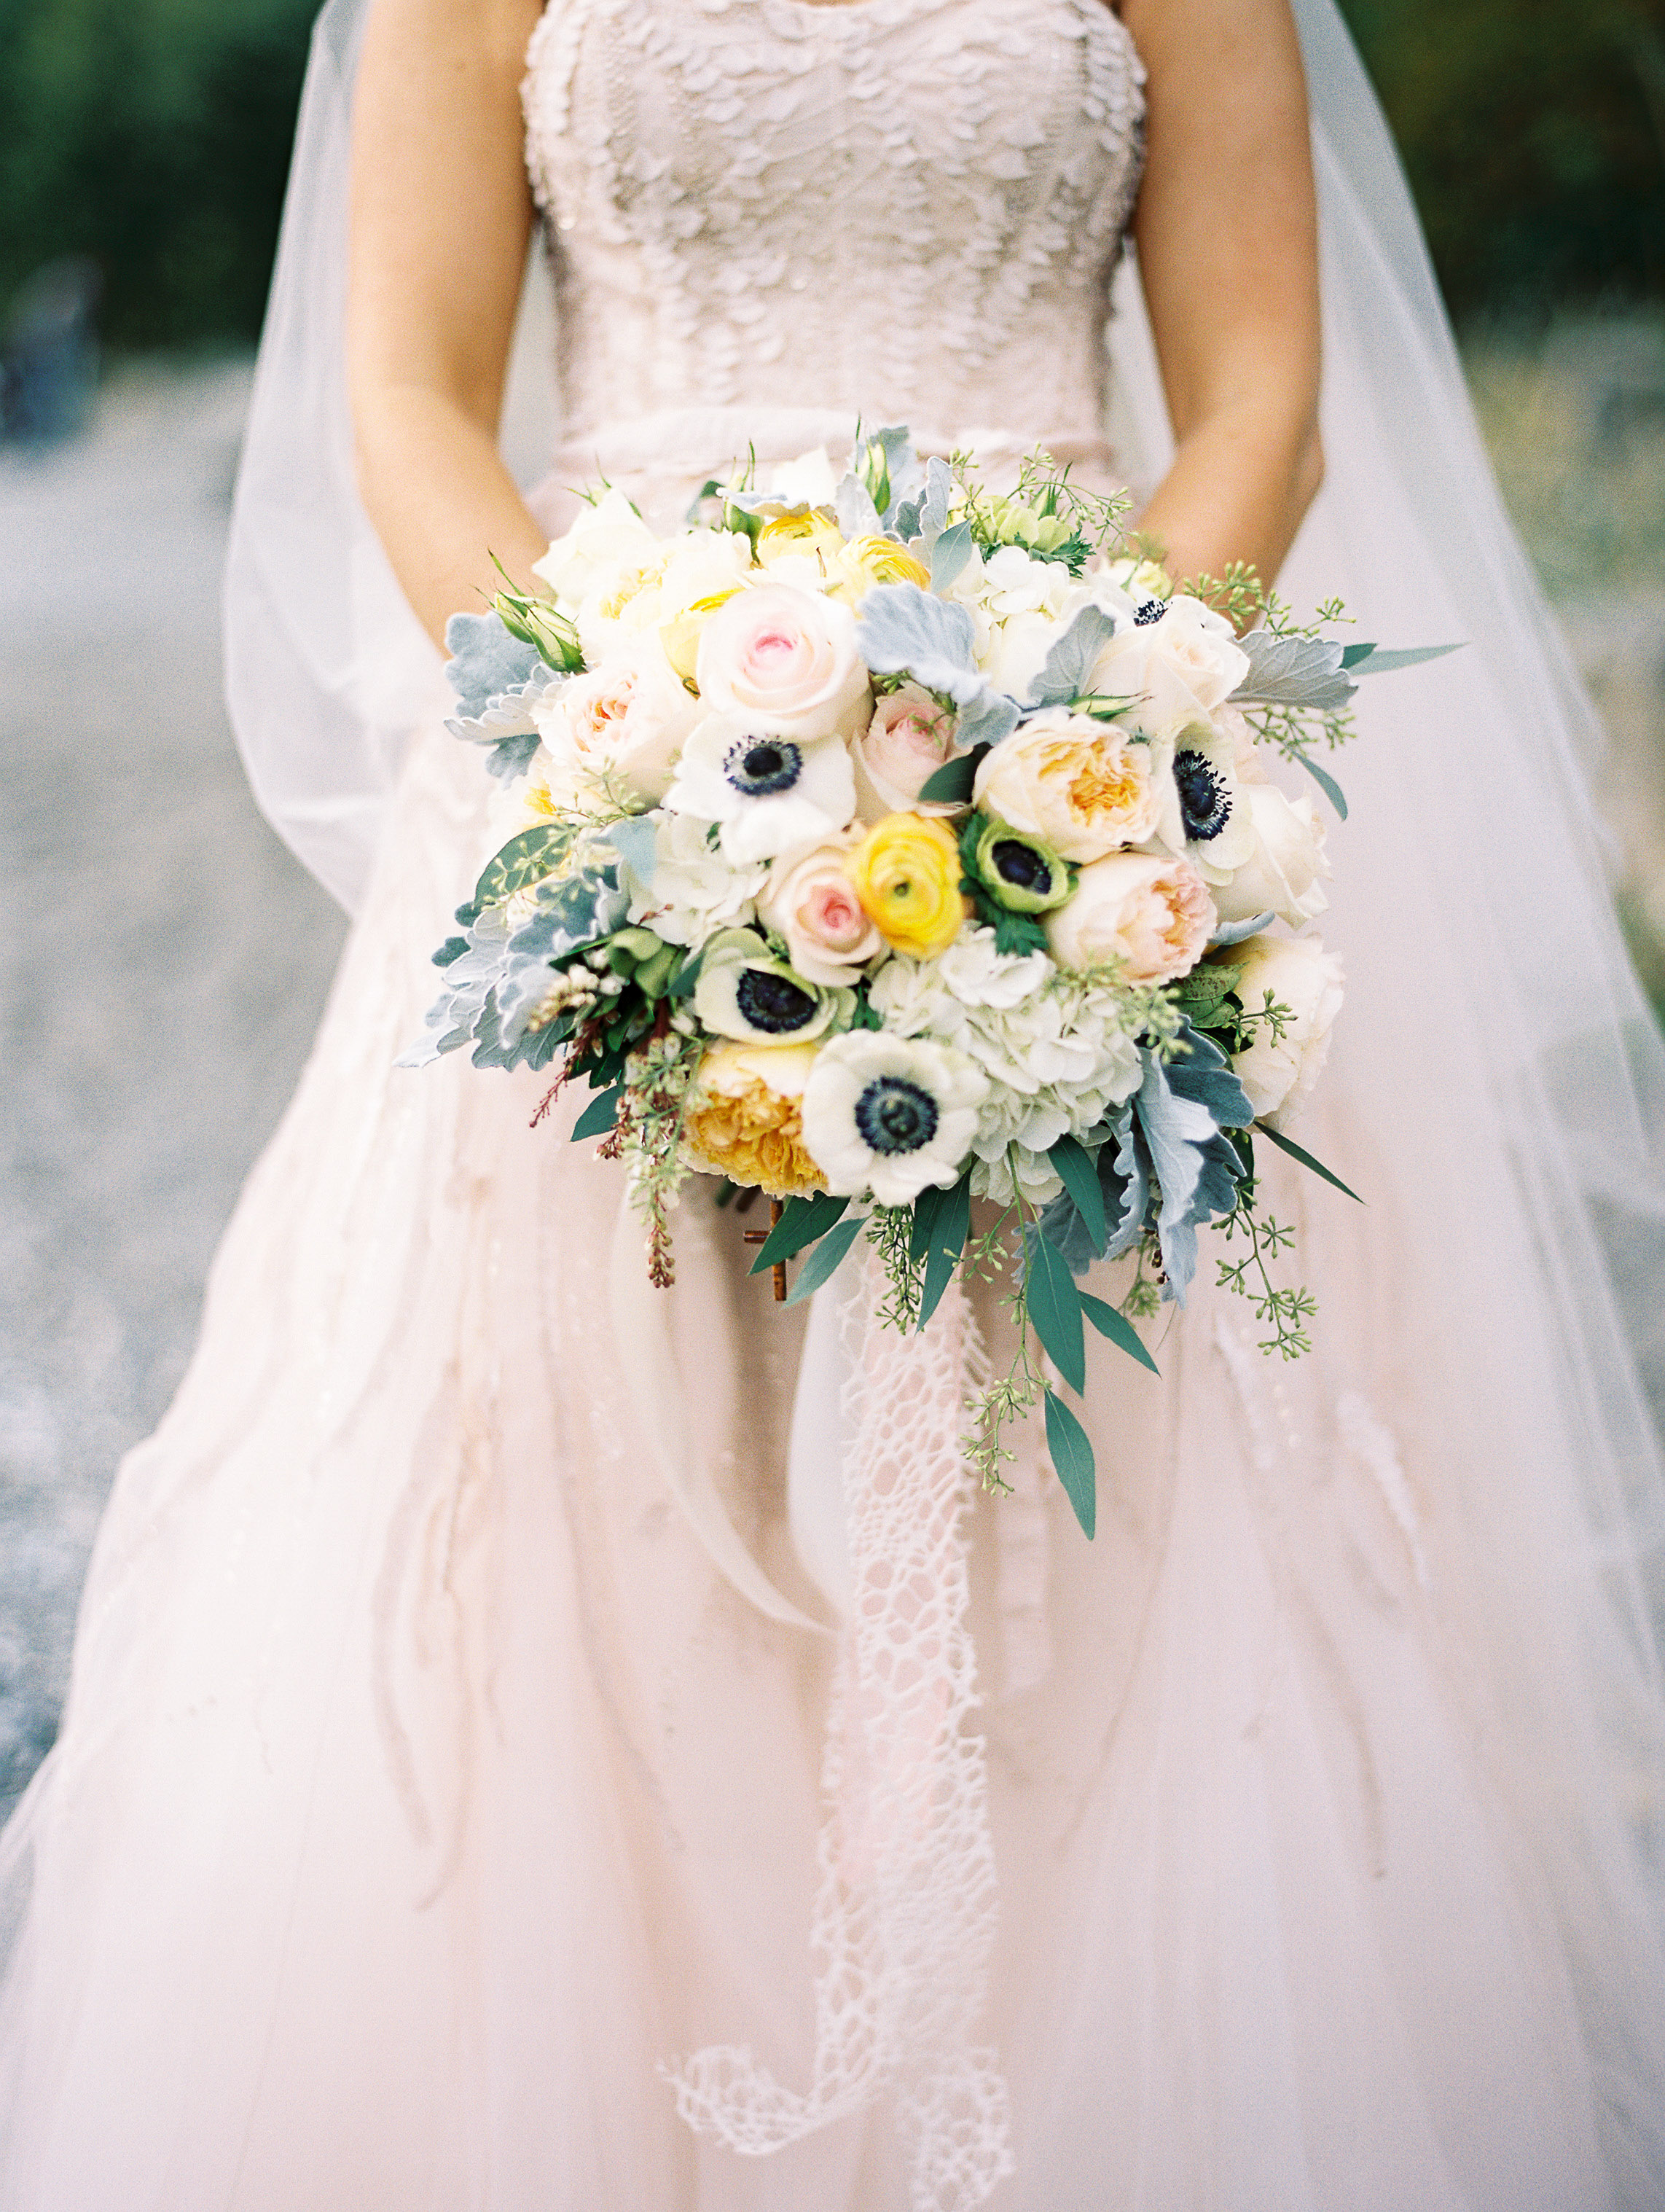 Yellow and ivory bridal bouquet of roses, hydrangea, anemones, ranunculus, with textured greenery - designed By Flora Nova Design